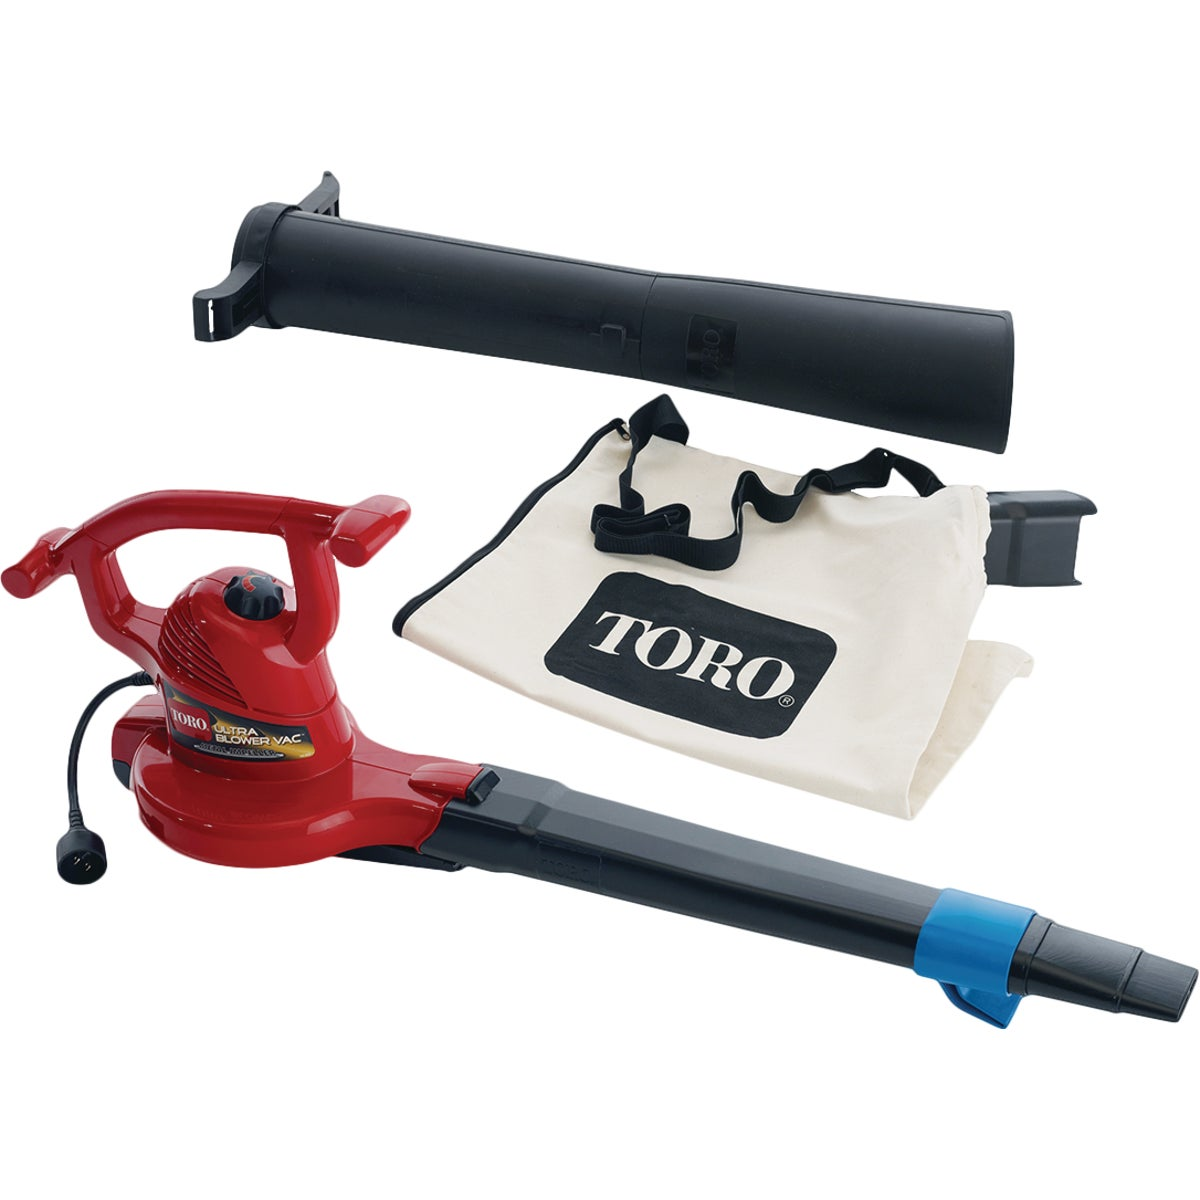 ULTRA BLOWER/VACUUM - 51609 by Toro Outdoor